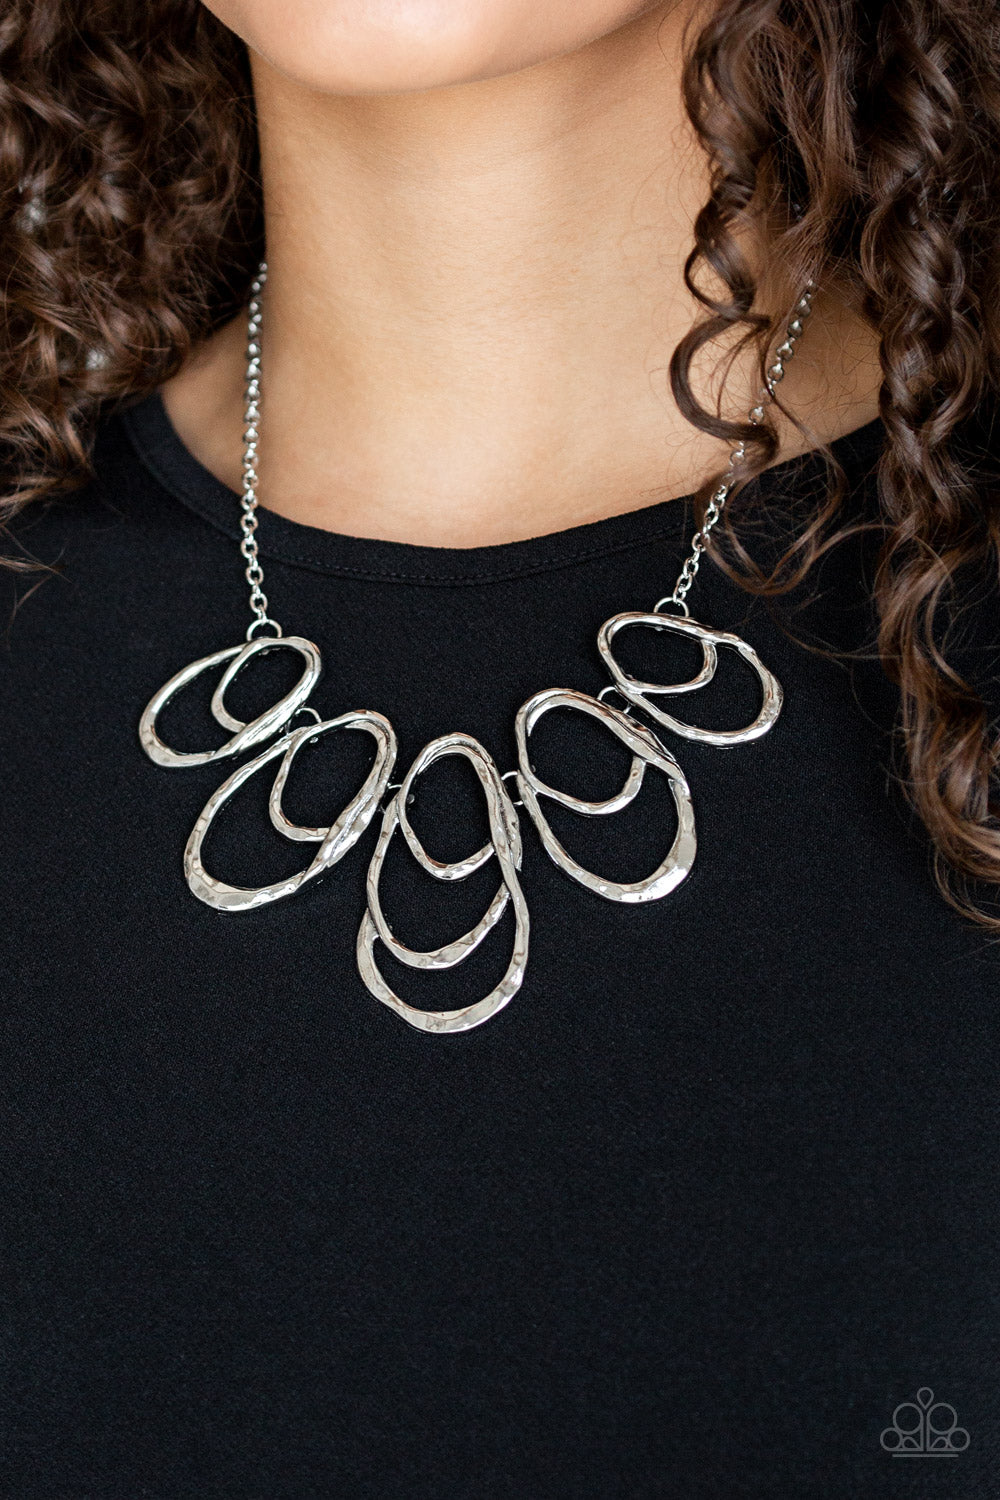 Paparazzi Accessories Terra Storm - Silver Necklaces - Lady T Accessories